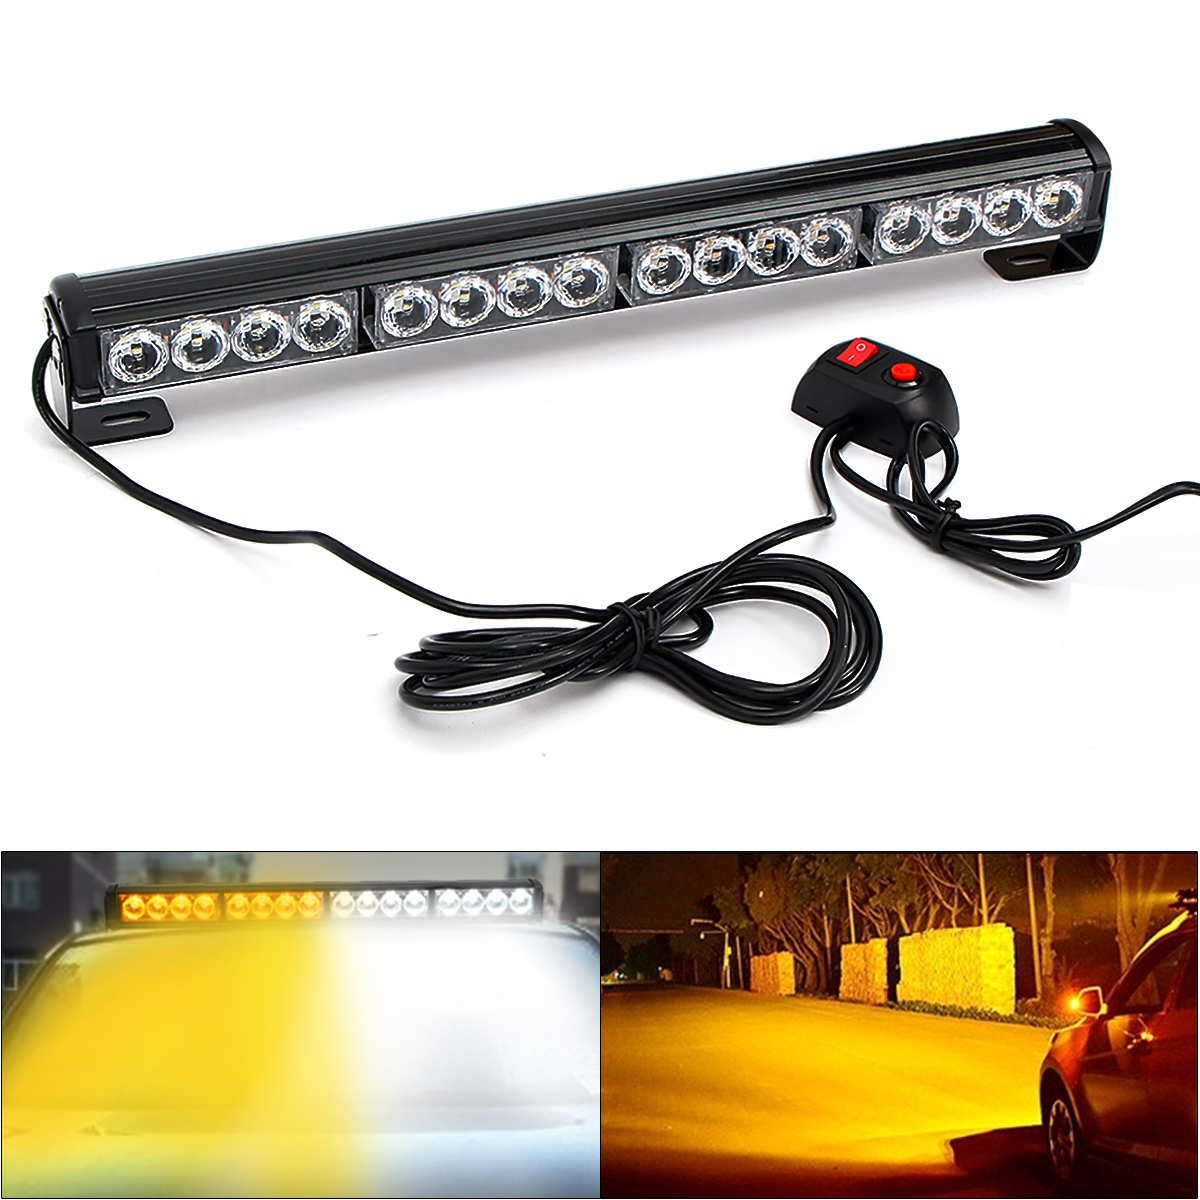 28 LED Emergency Traffic Advisor Hazard Flash Strobe Light Bar White /& Amber